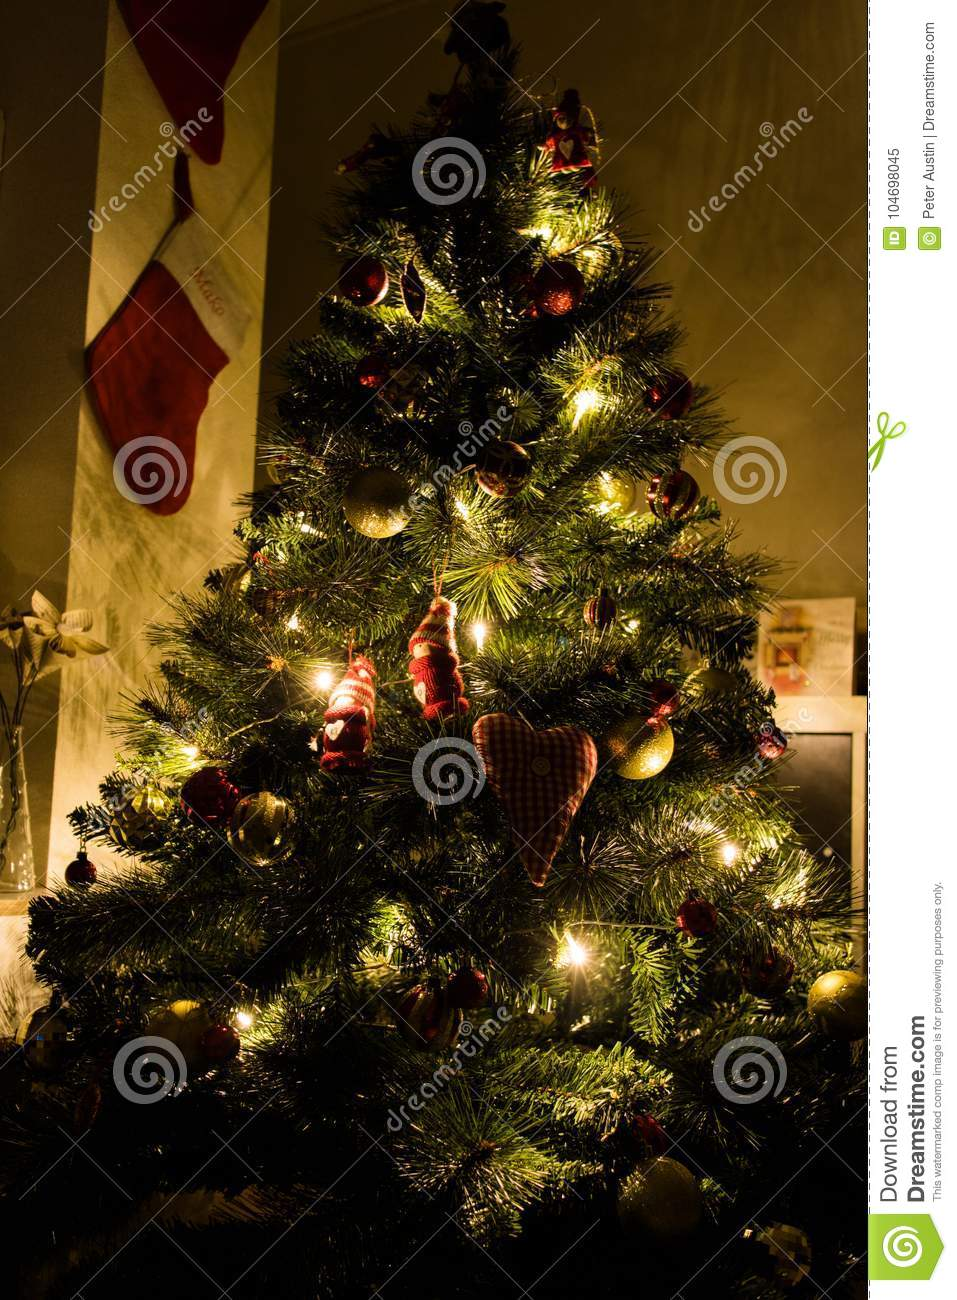 a beautiful christmas tree lit up in a small cosy room with stockings on the wall